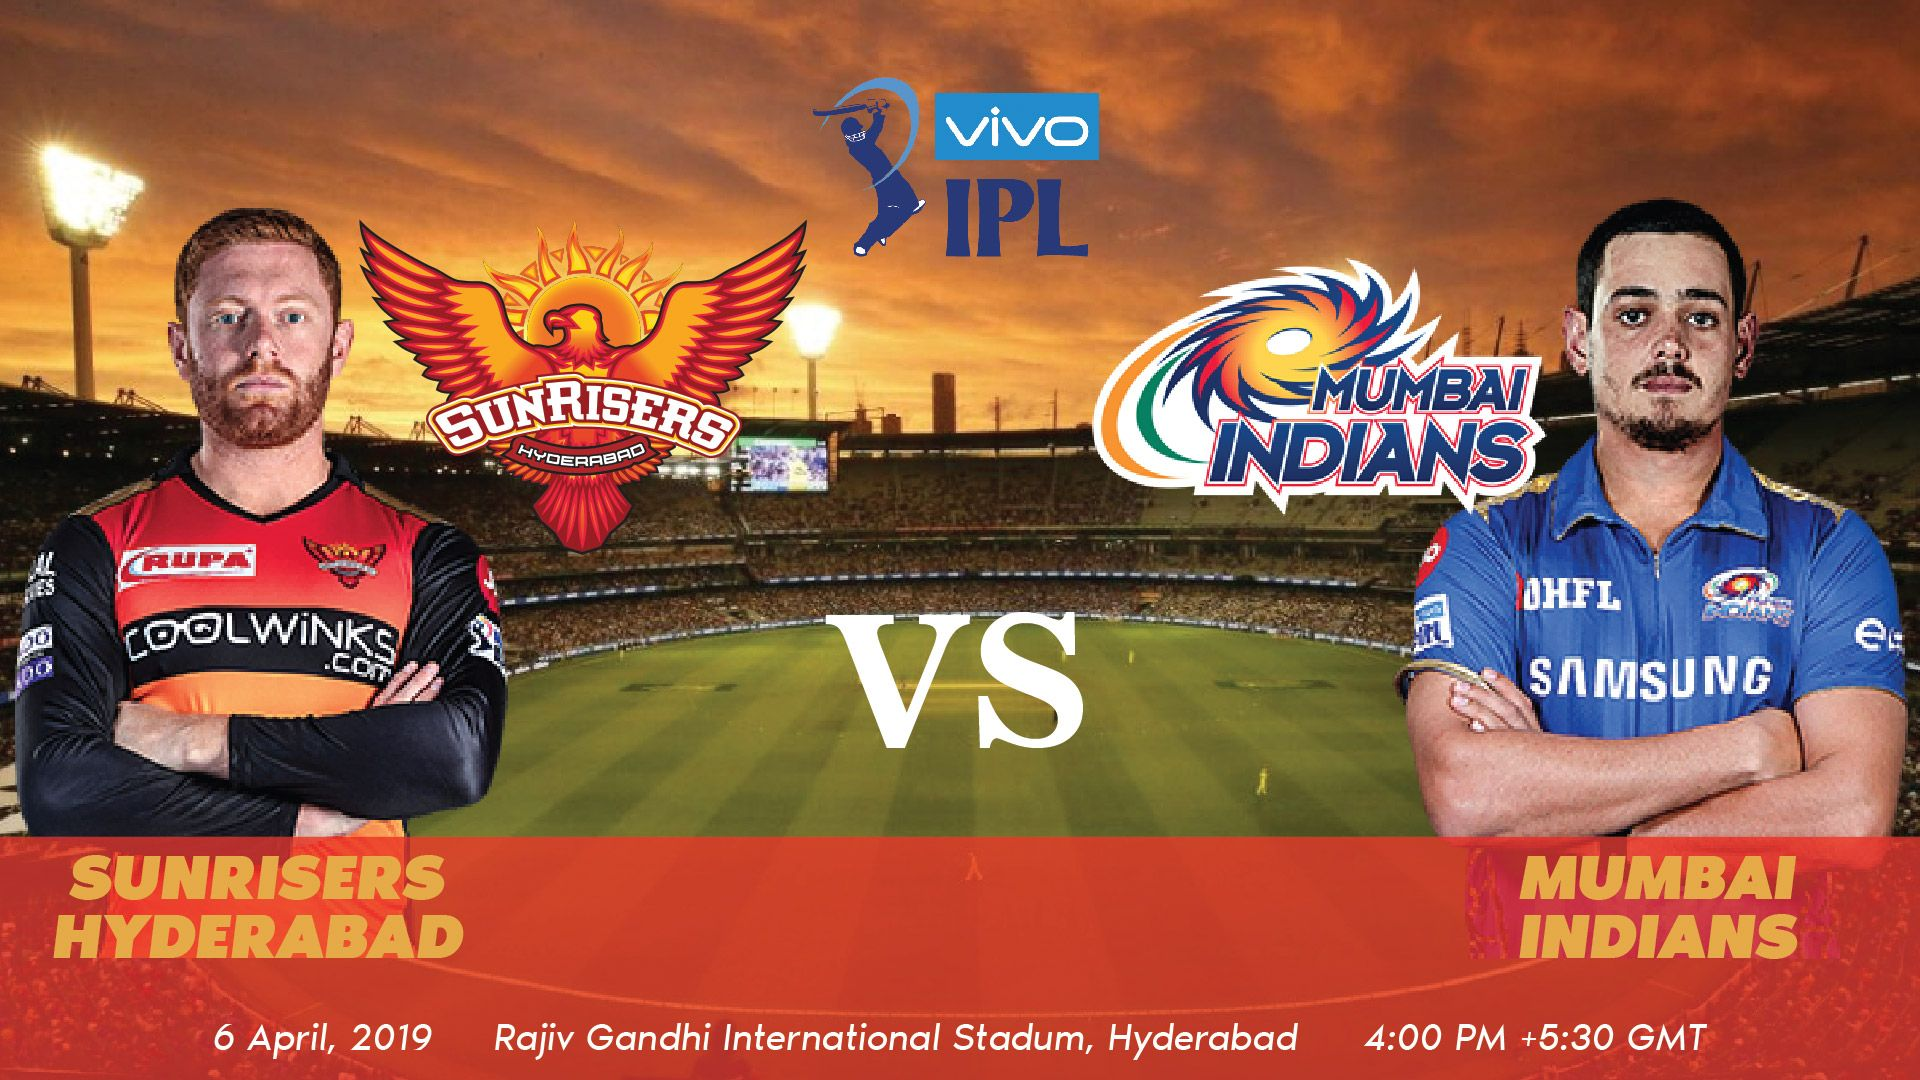 online betting on ipl matches today